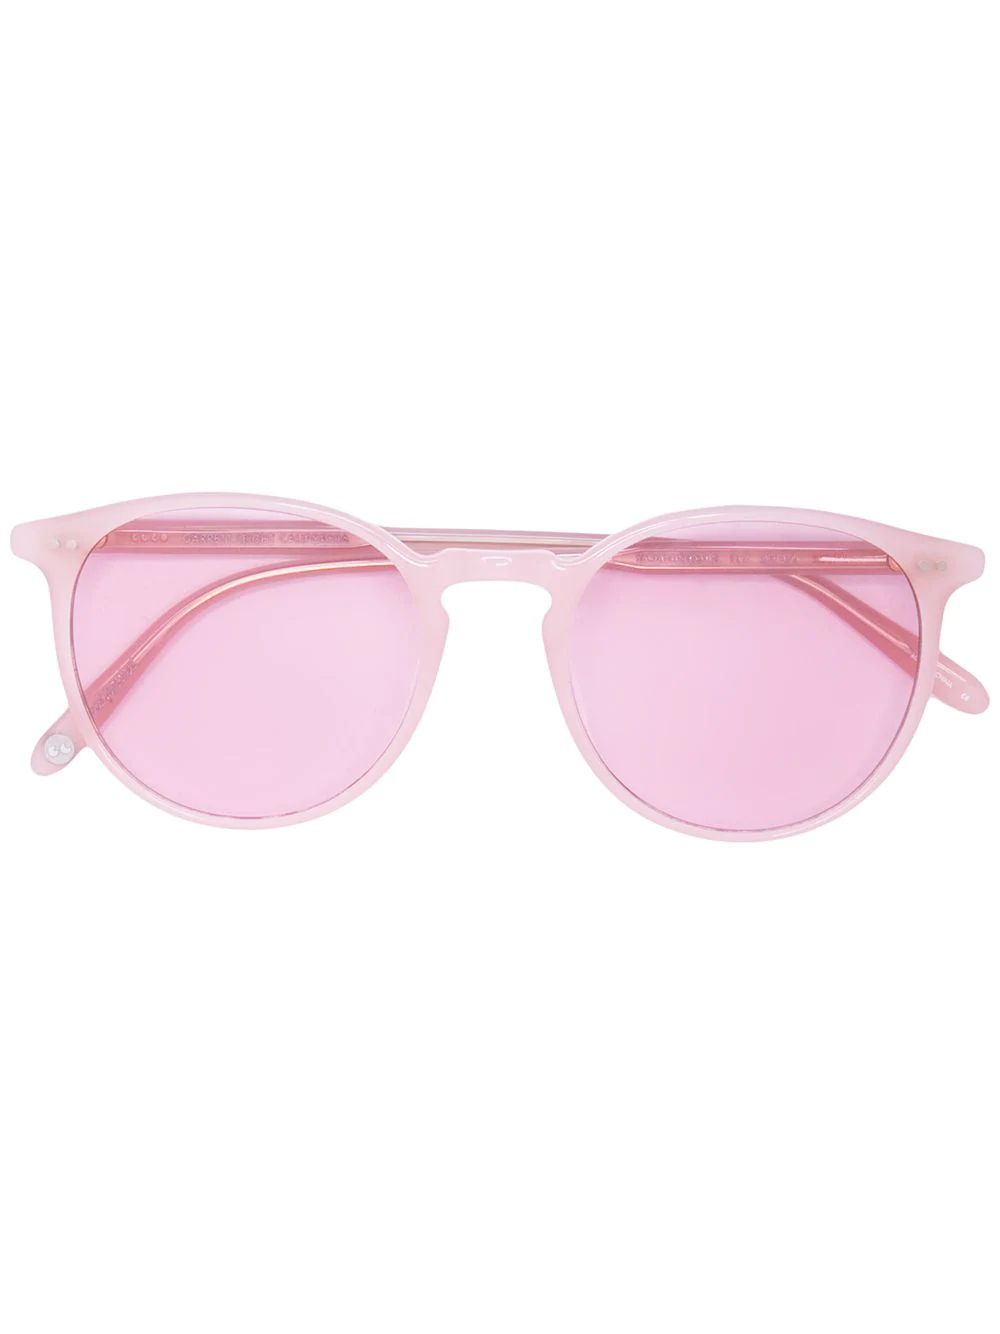 Garrett Leight Pink Morningside Sunglasses